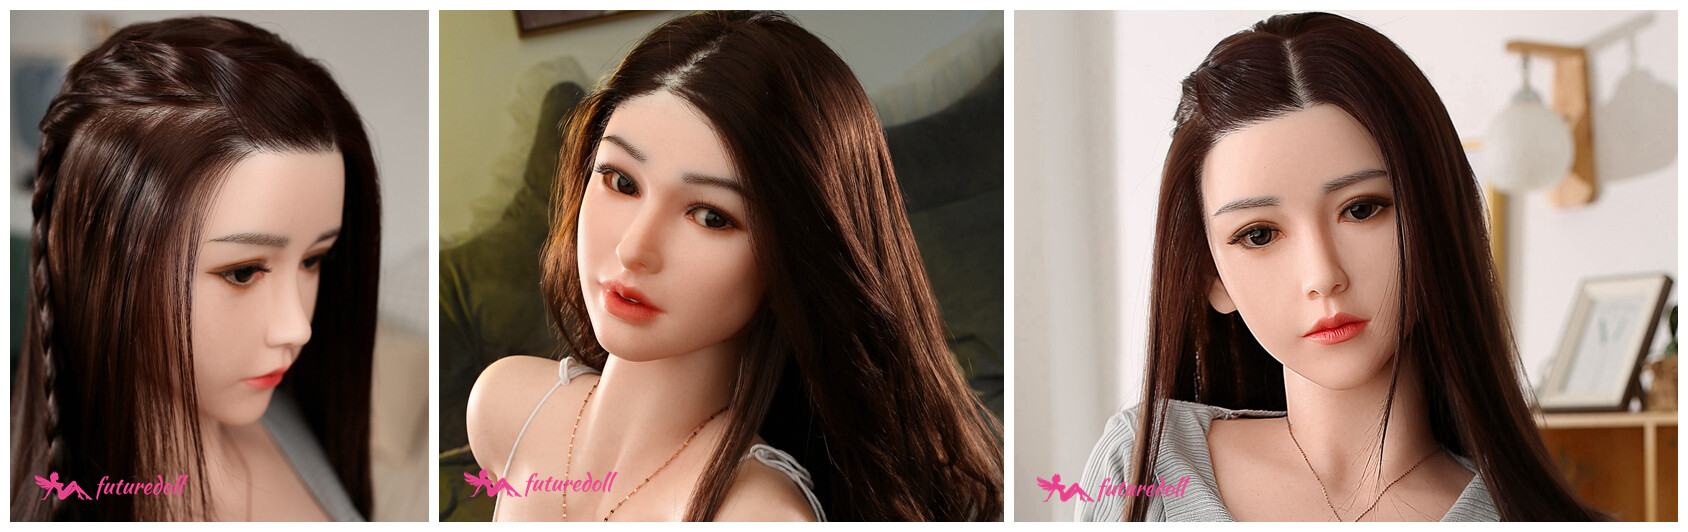 Asian Real Doll Sexy Future Doll 165cm Realistic Silicone Sex Doll Japanese Young Girl Hiromi Fine Love Doll Asian Real Doll Sexy 165cm Realistic Silicone Sex Doll Fine Love Doll